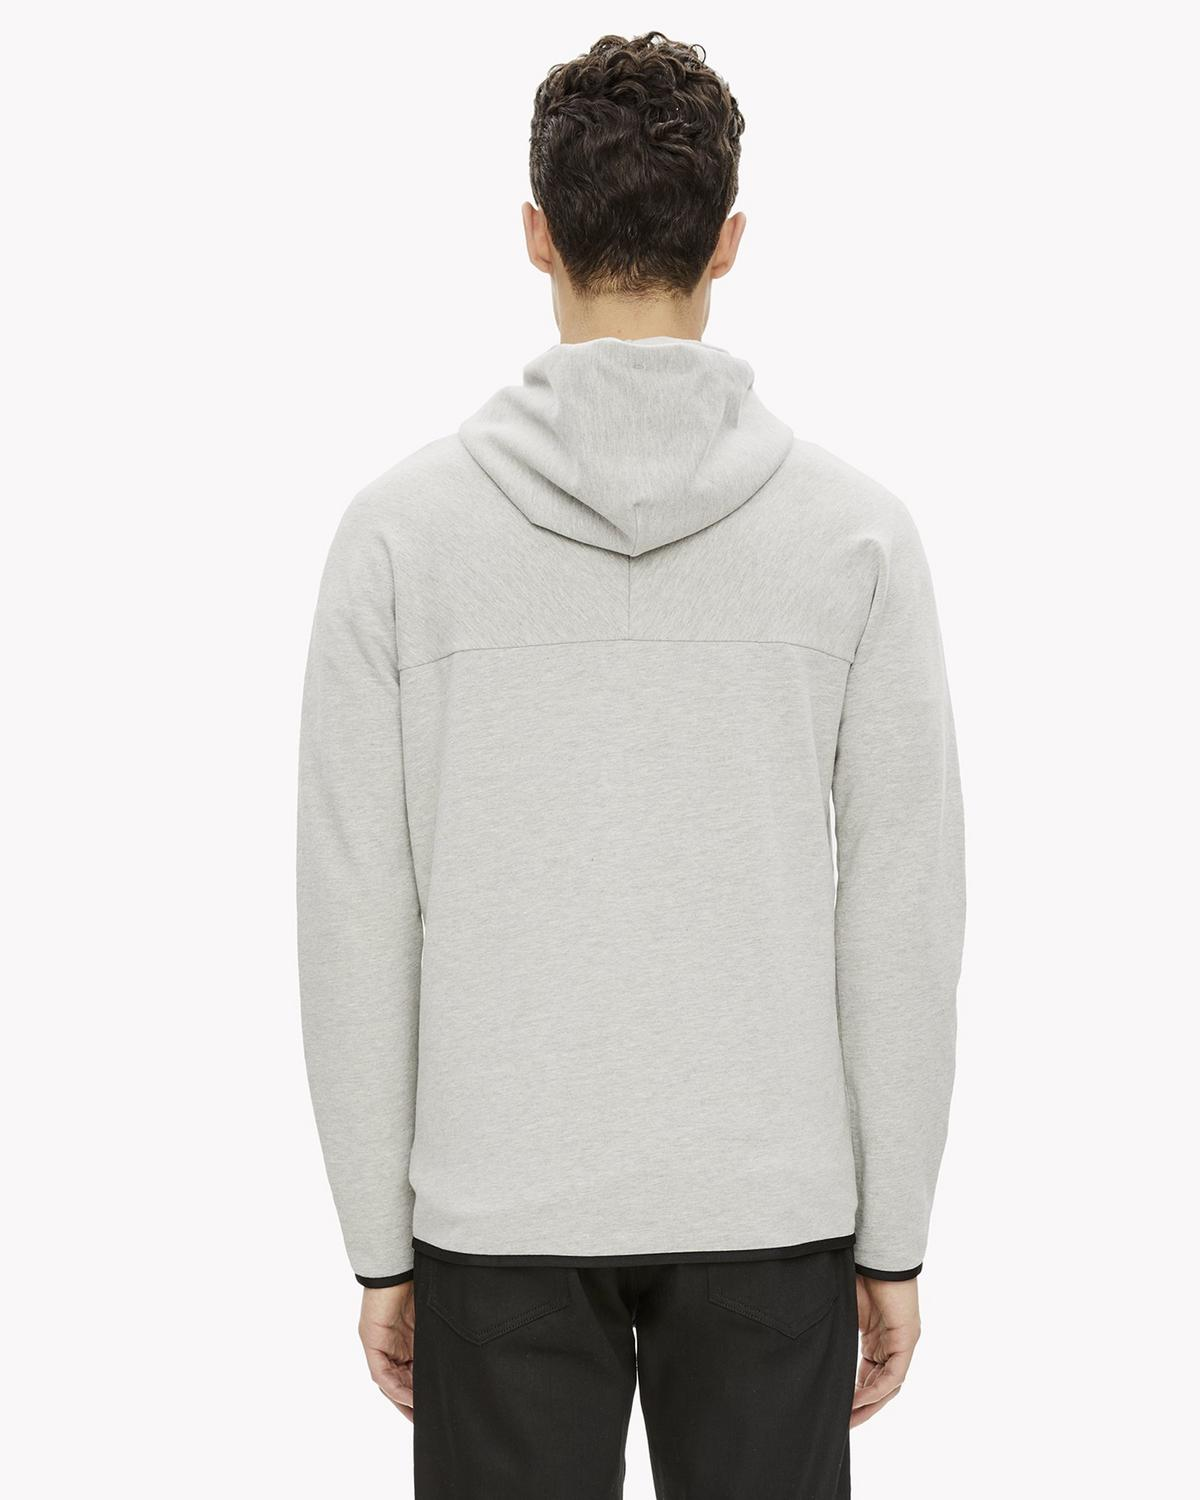 Stretch Terry Hooded Zip Sweatshirt